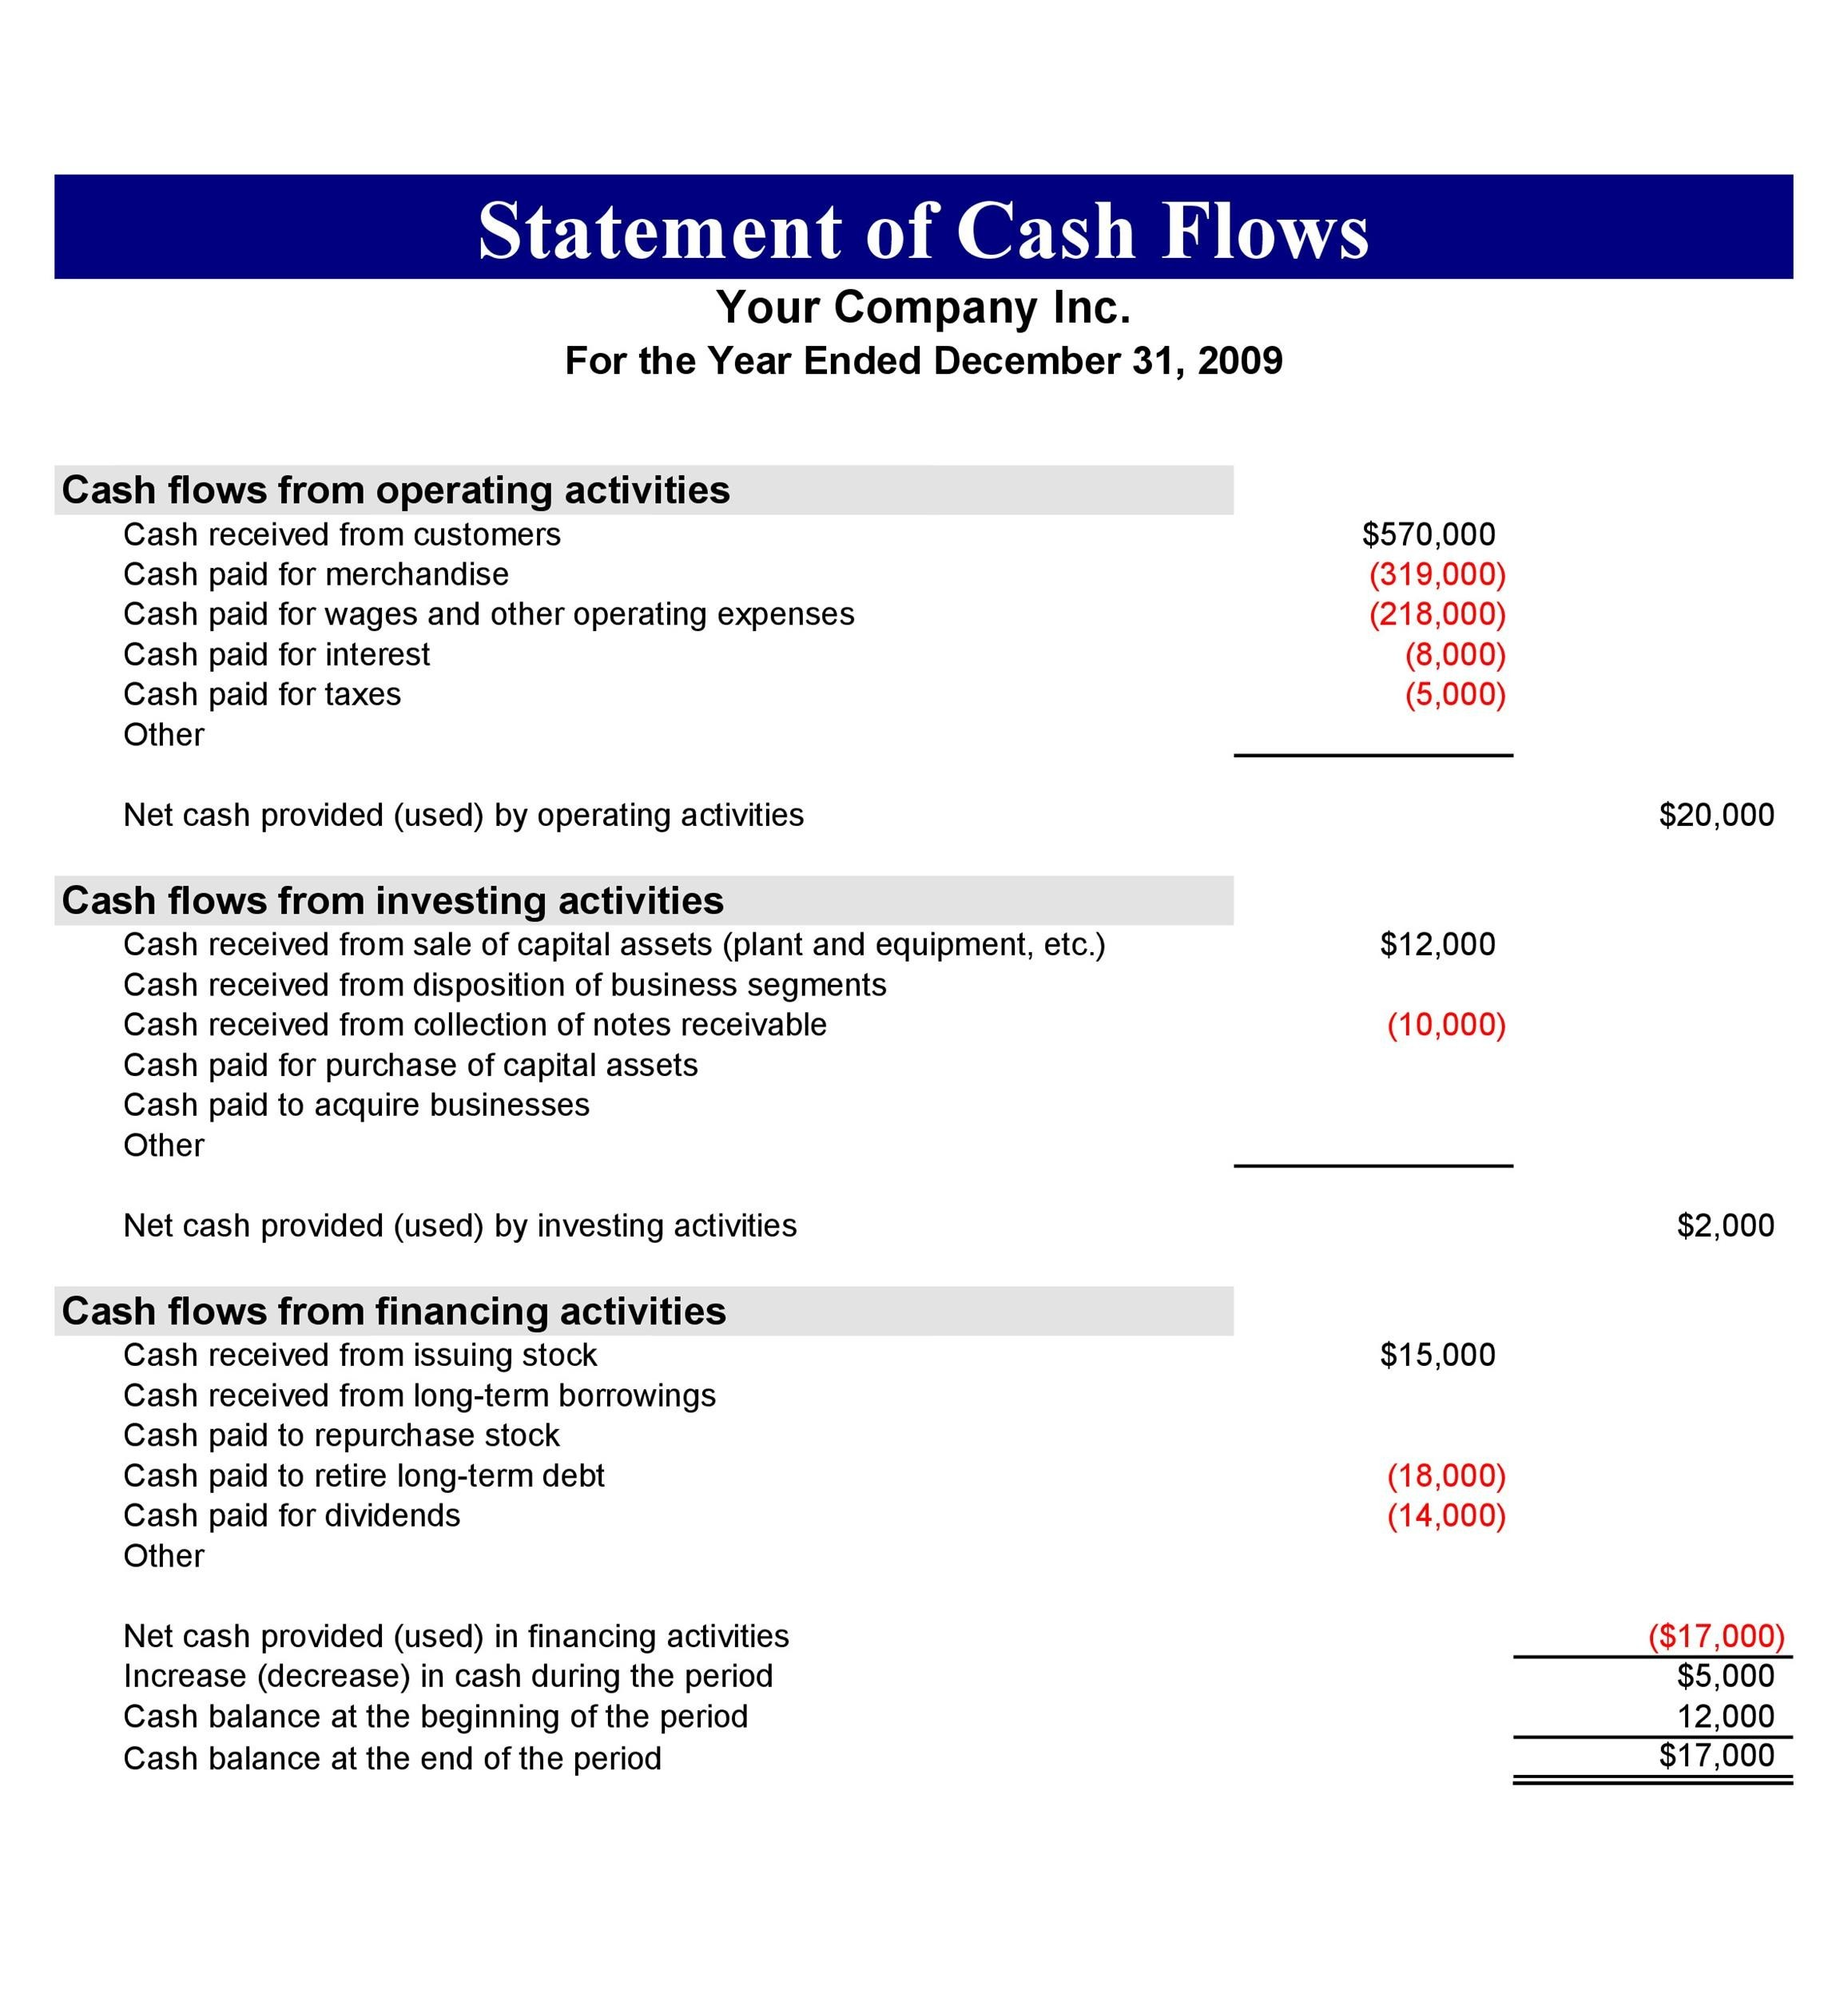 cash flow statement 40